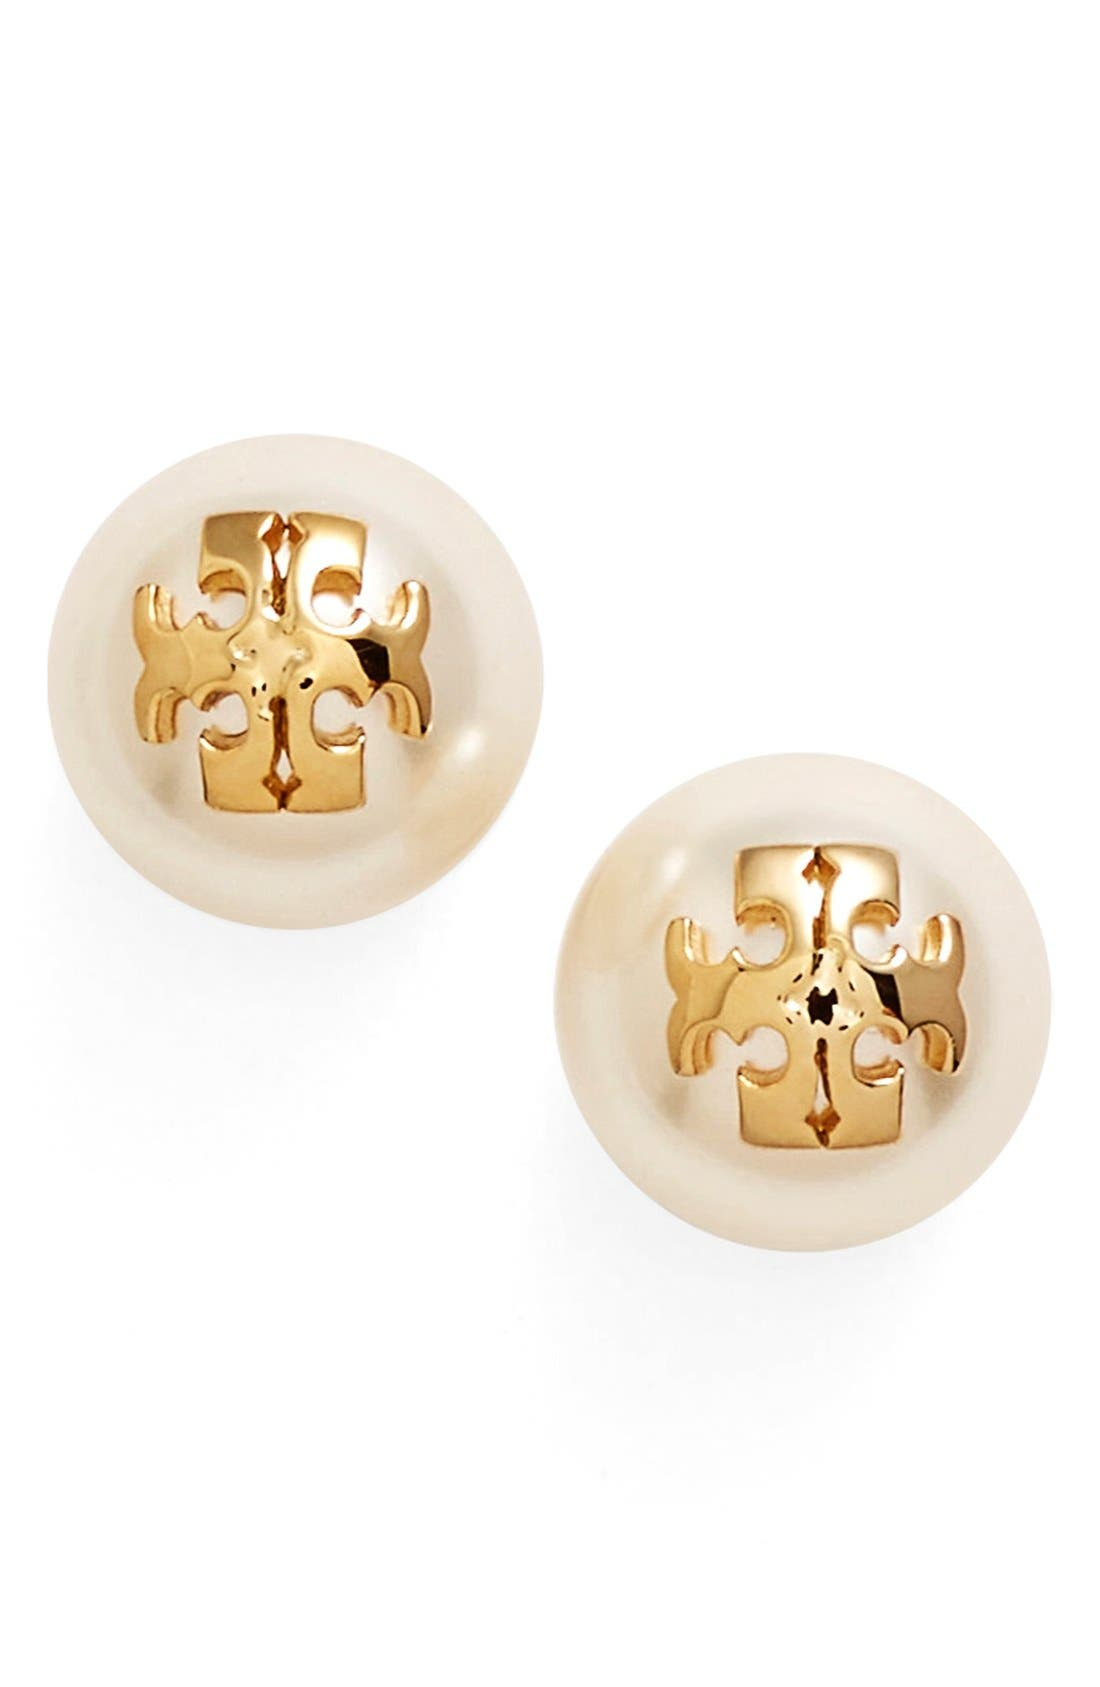 Tory Burch Swarovski Crystal Pearl Logo Stud Earrings